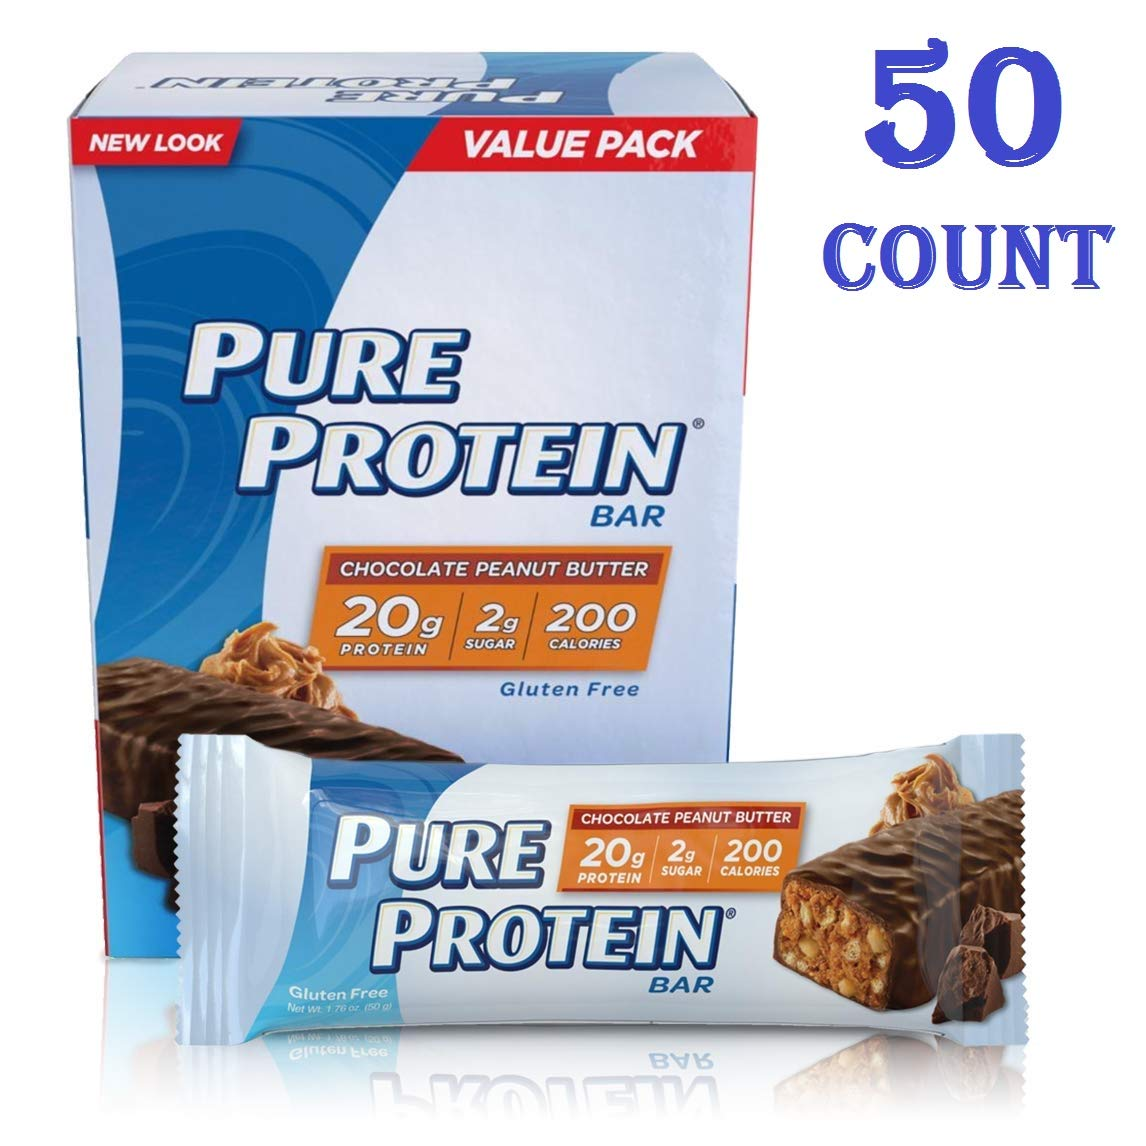 Pure Protein Bars, High Protein, Nutritious Snacks to Support Energy, Low Sugar, Gluten Free, Chocolate Peanut Butter, 1.76oz, 50 Count total (50 Count total)